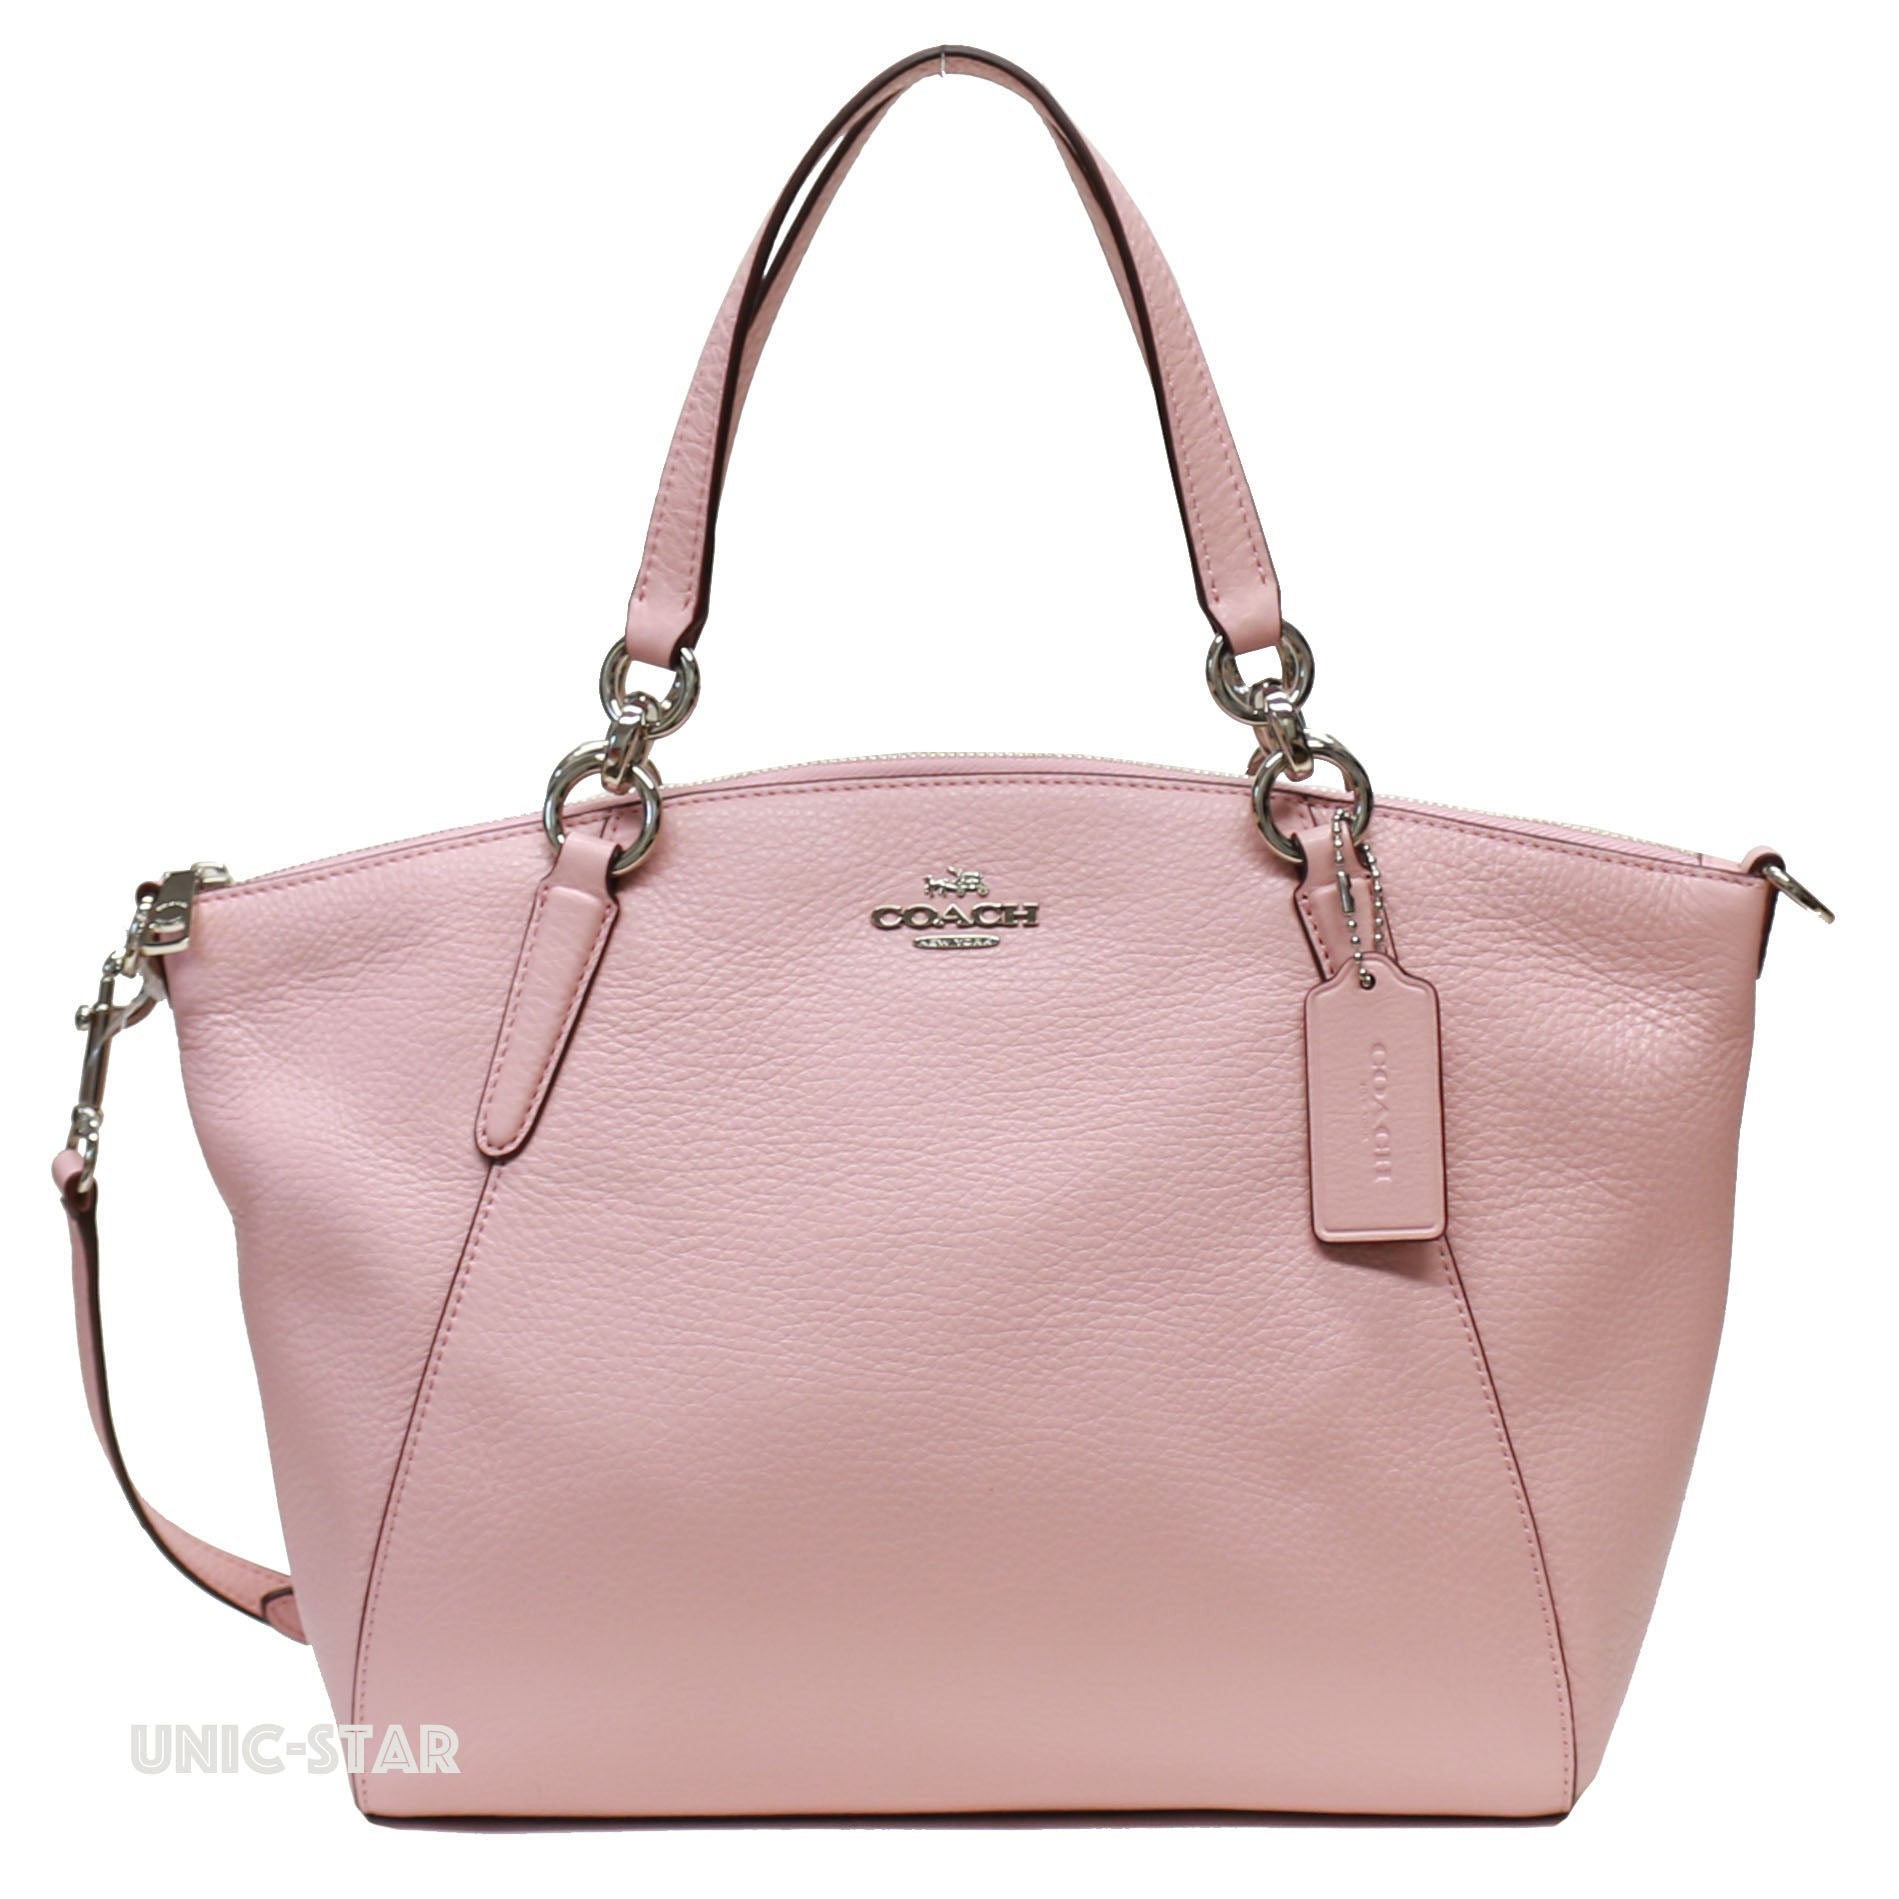 Coach F26917 Pebble Leather Small Kelsey Blush 2 Unic Star